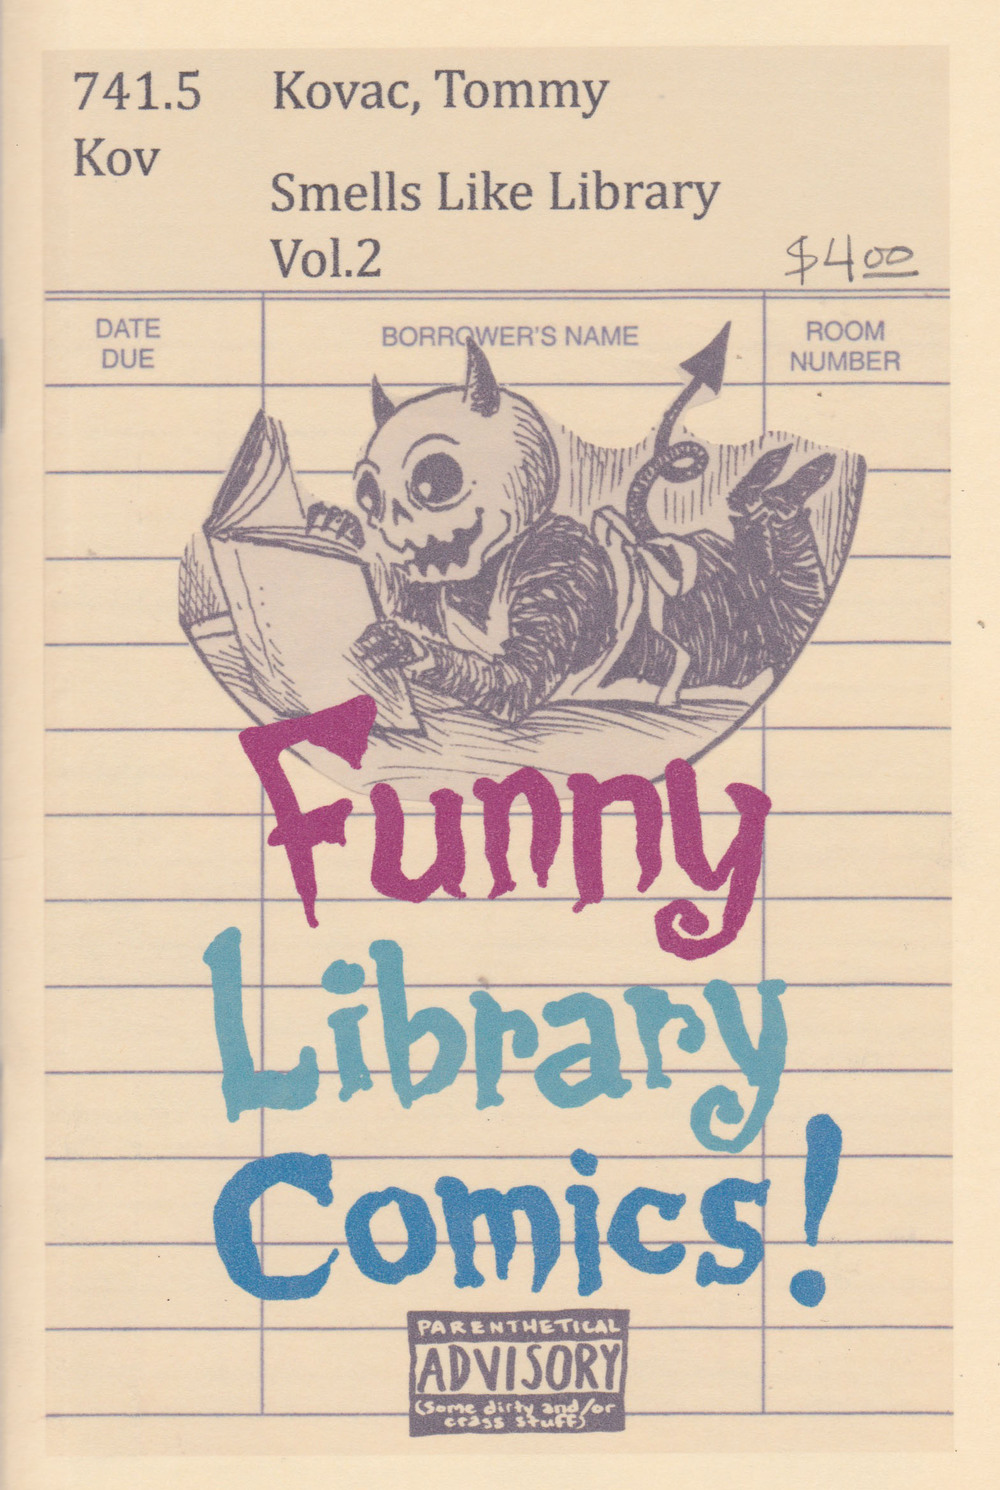 Smells Like Library: The Collected Comics Vol. 2